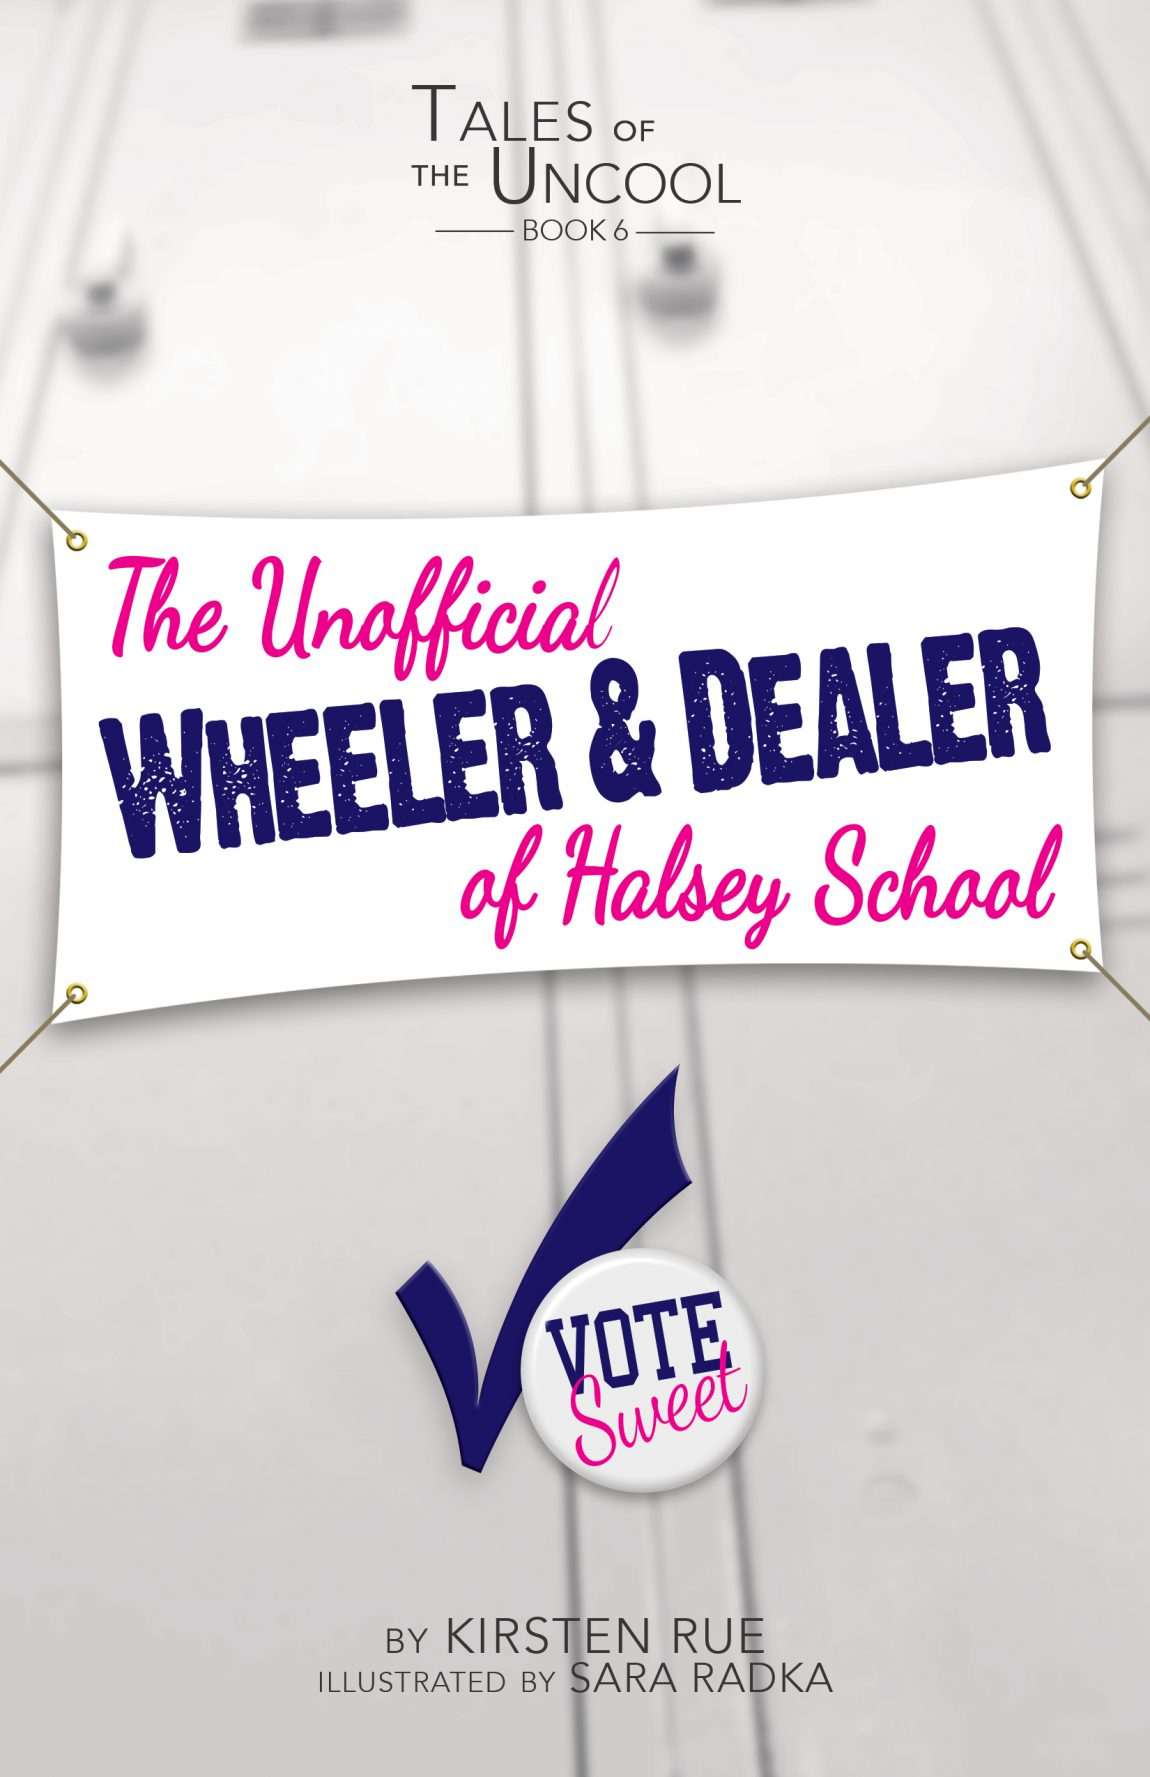 The-Unofficial-Wheeler-Dealer-of-Halsey-School-1.jpg